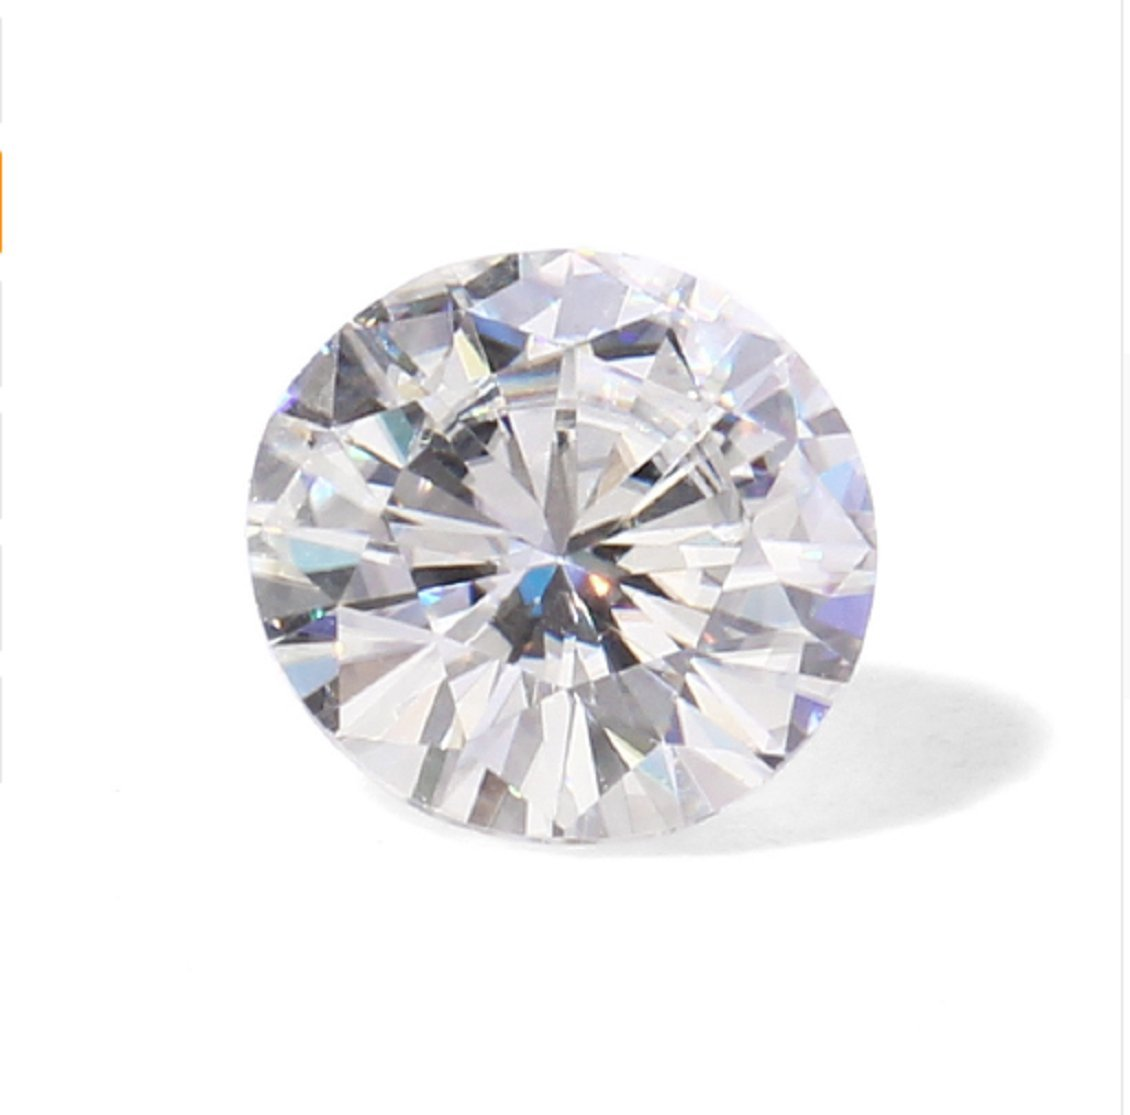 GOWE 6 Carat 12mm F Color Lab Grown Moissanite Multicolor Diamond excellent cut Gemstone For Fashion Jewelry